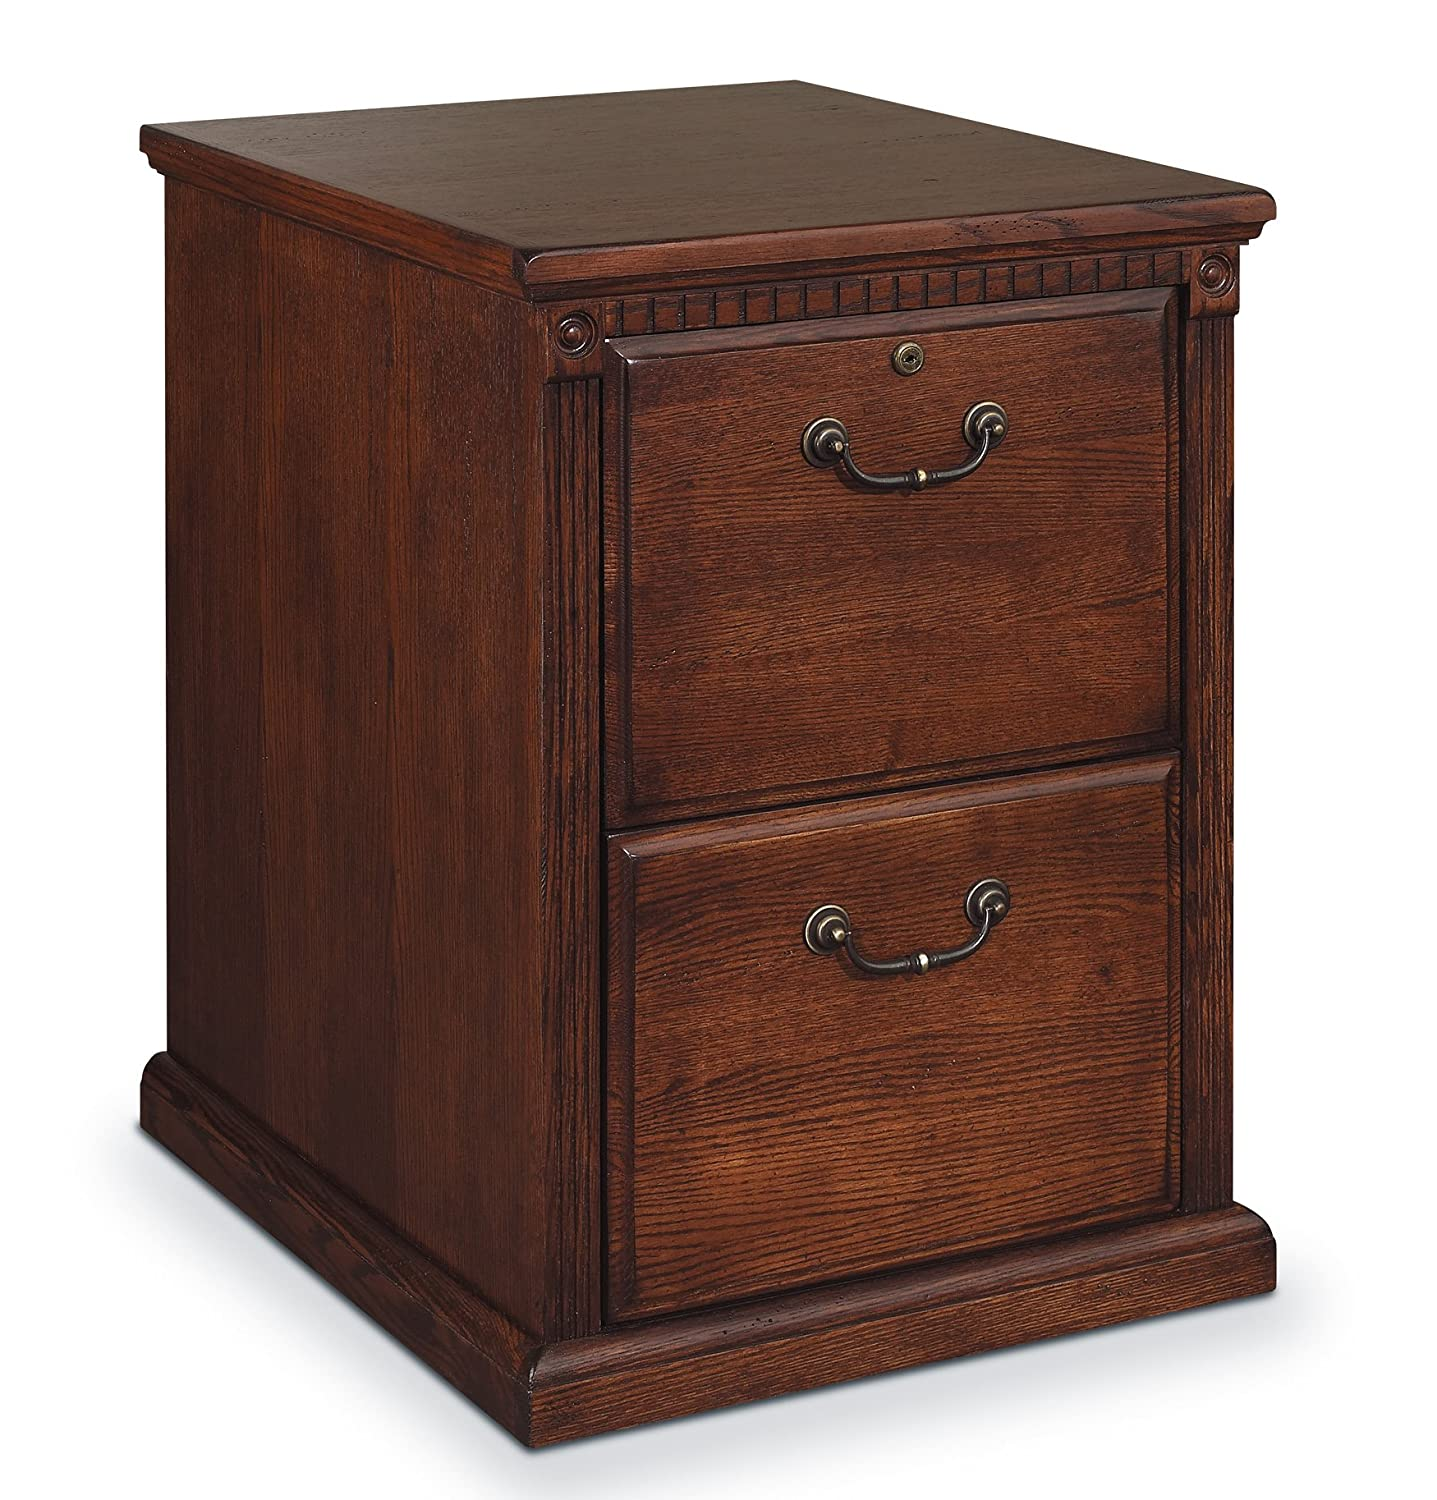 Amazon.com Martin Furniture Huntington Oxford 2 Drawer File Cabinet Burnish - Fully Assembled Kitchen u0026 Dining  sc 1 st  Amazon.com & Amazon.com: Martin Furniture Huntington Oxford 2 Drawer File Cabinet ...